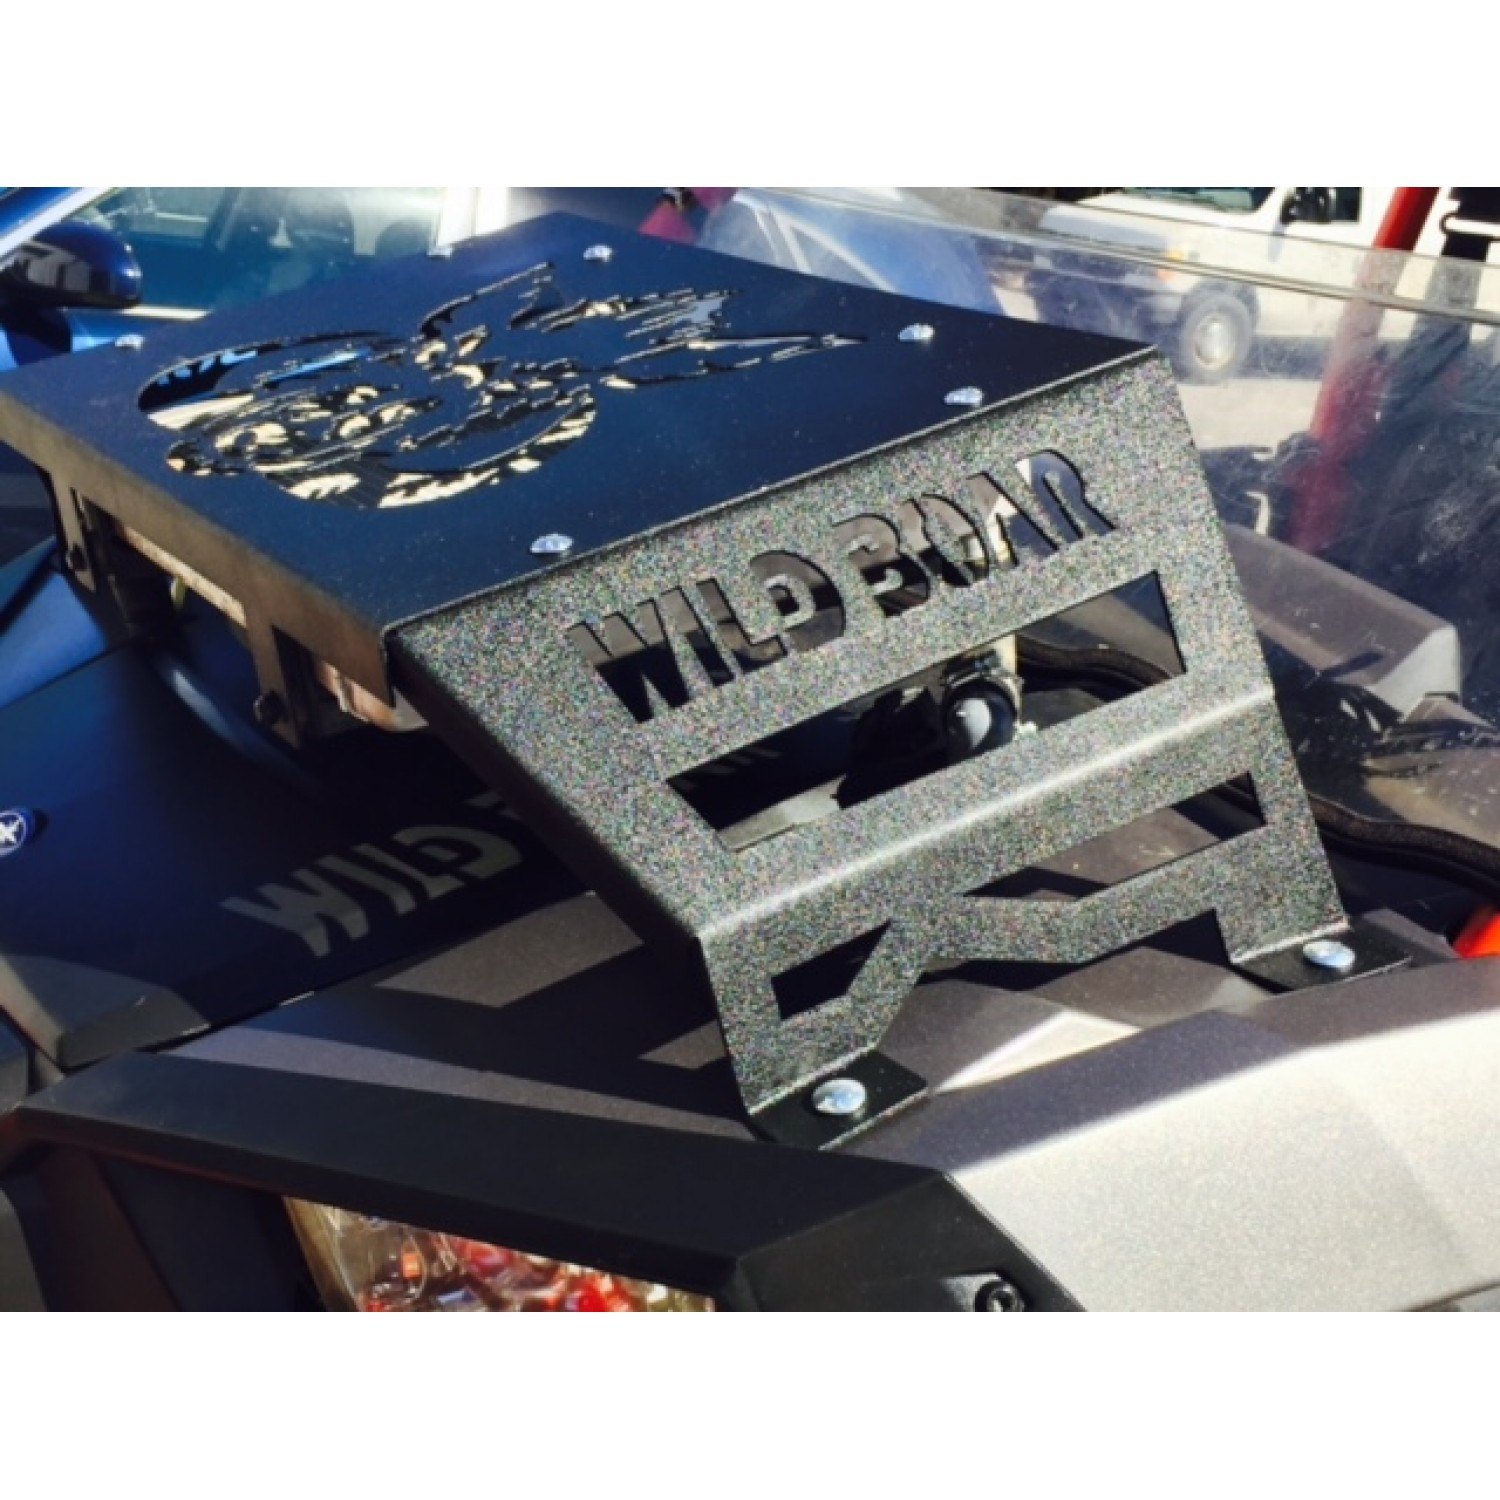 Polaris RZR 900S/RZR900 Trail/1000s/1000 All Years Radiator Relocation Kit Free Shipping